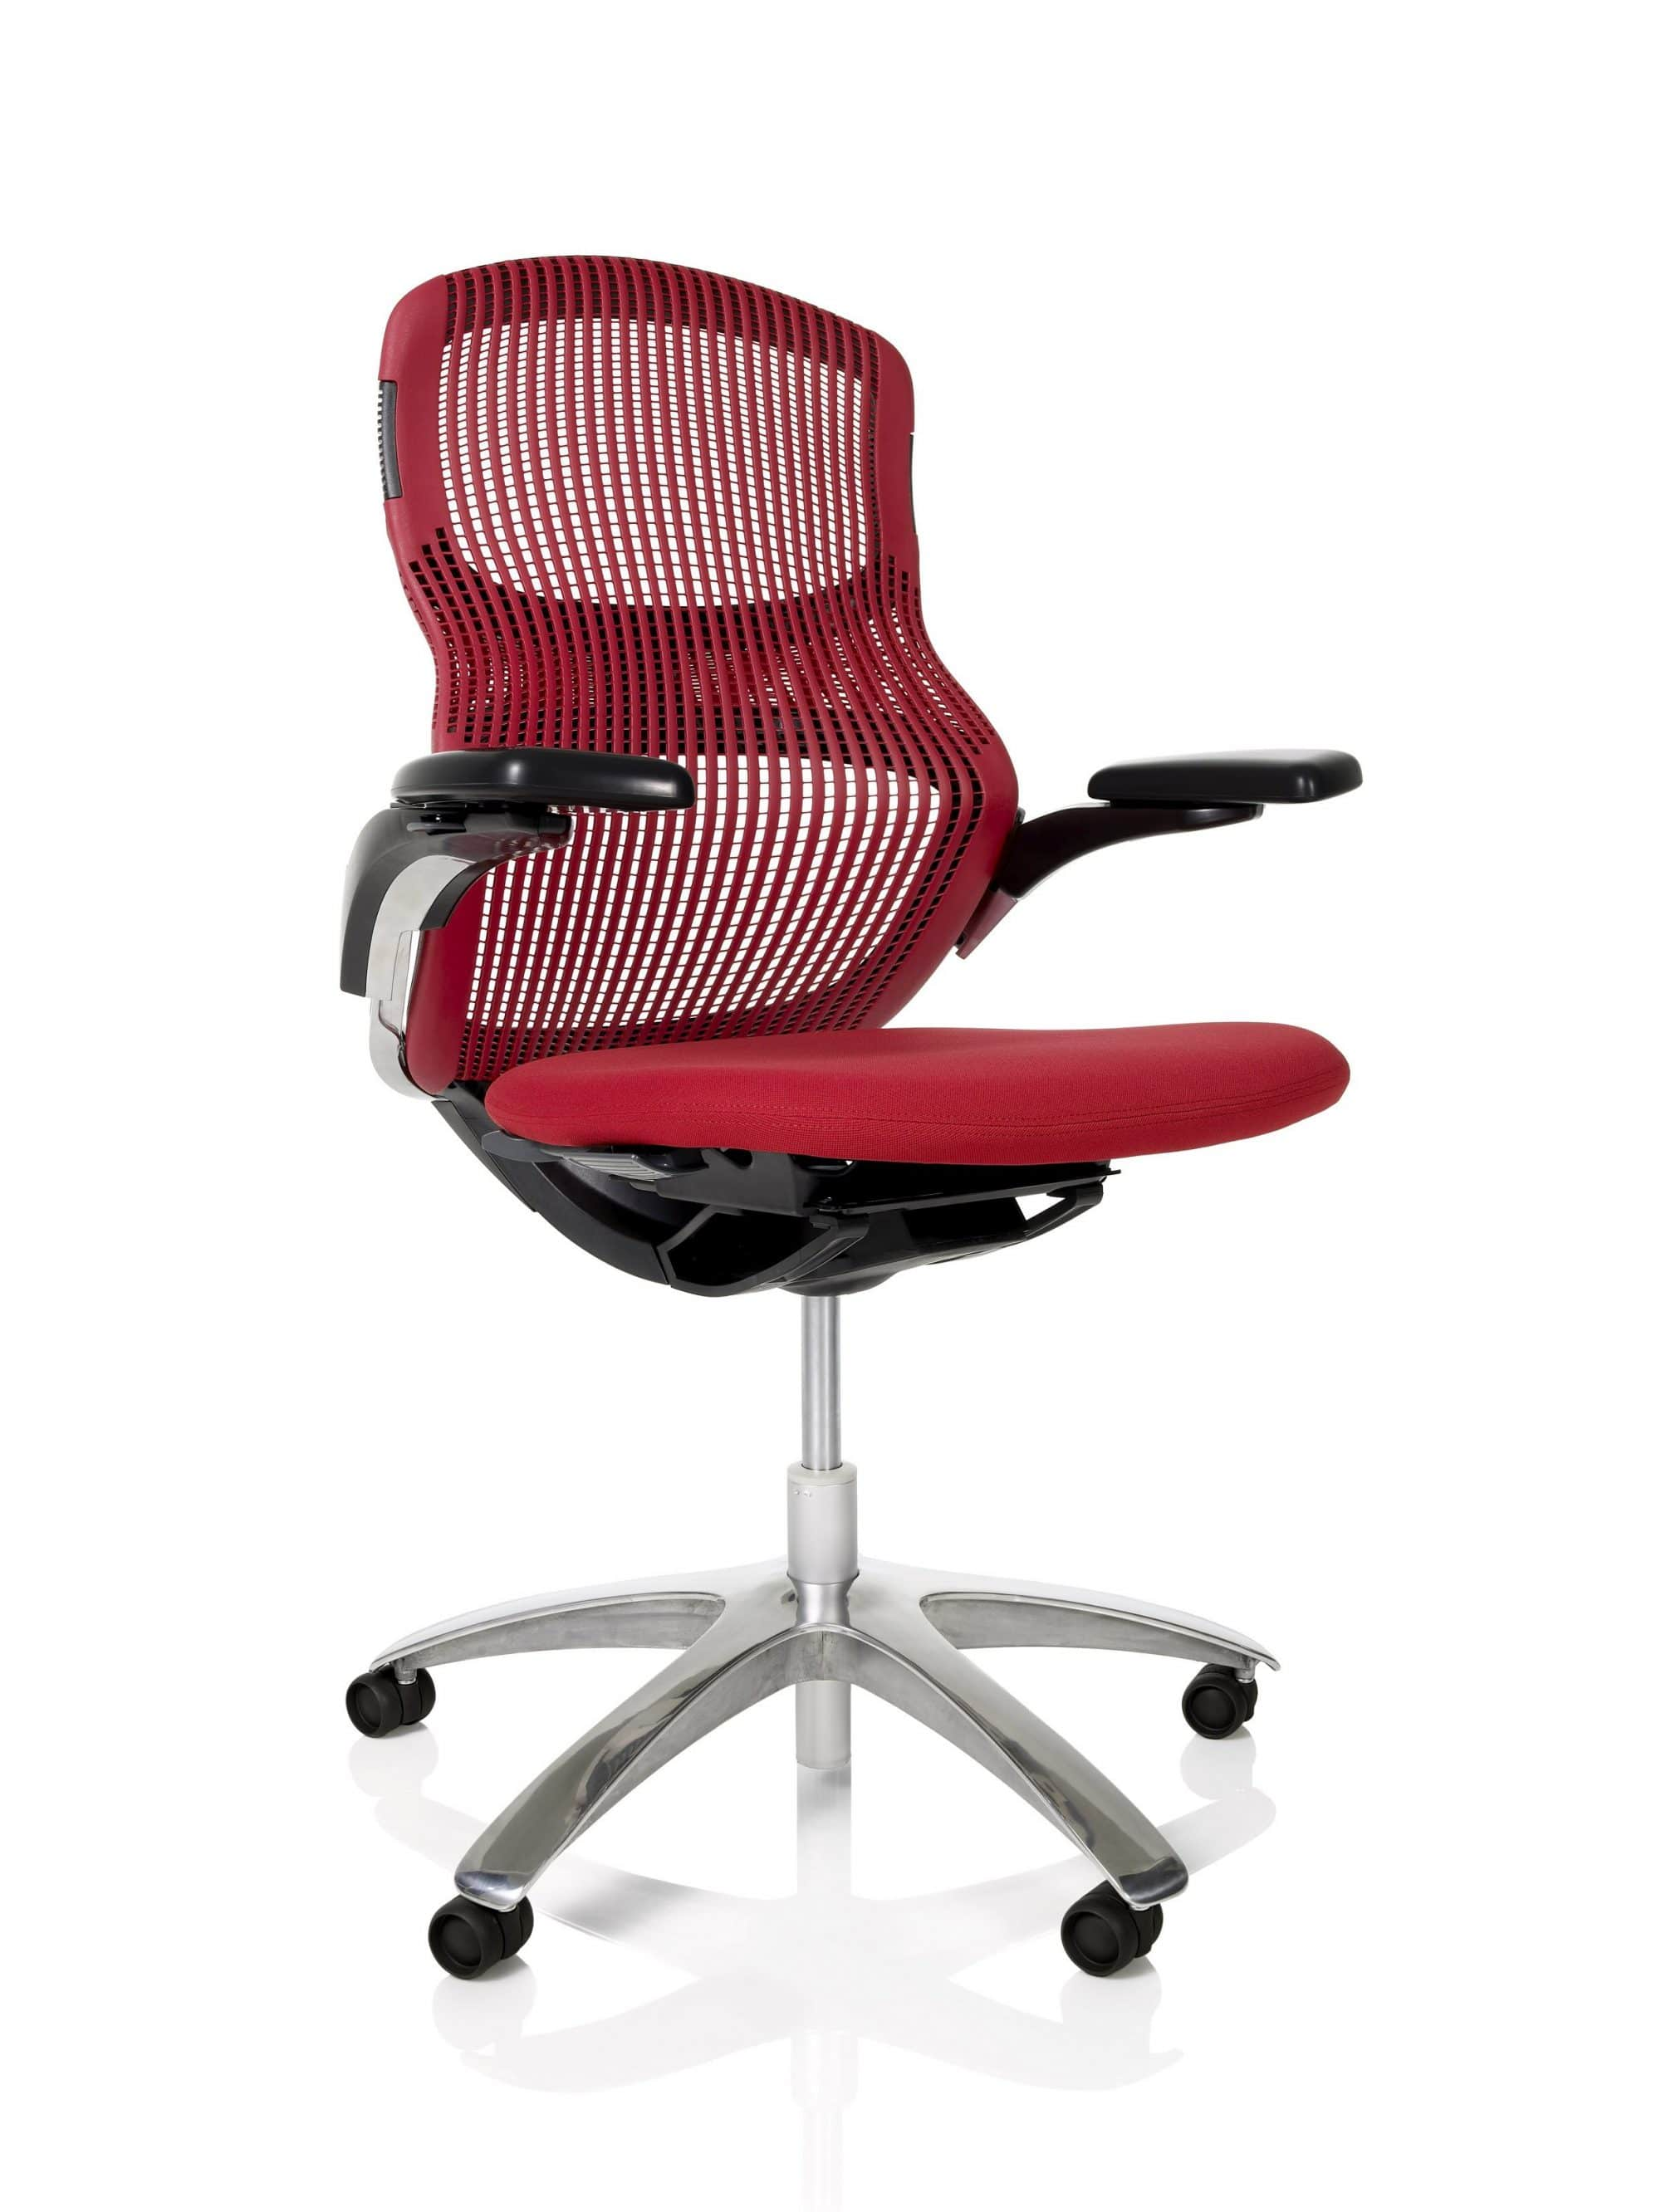 Ergonomic Office Chair Knoll. Knoll Generation Chair